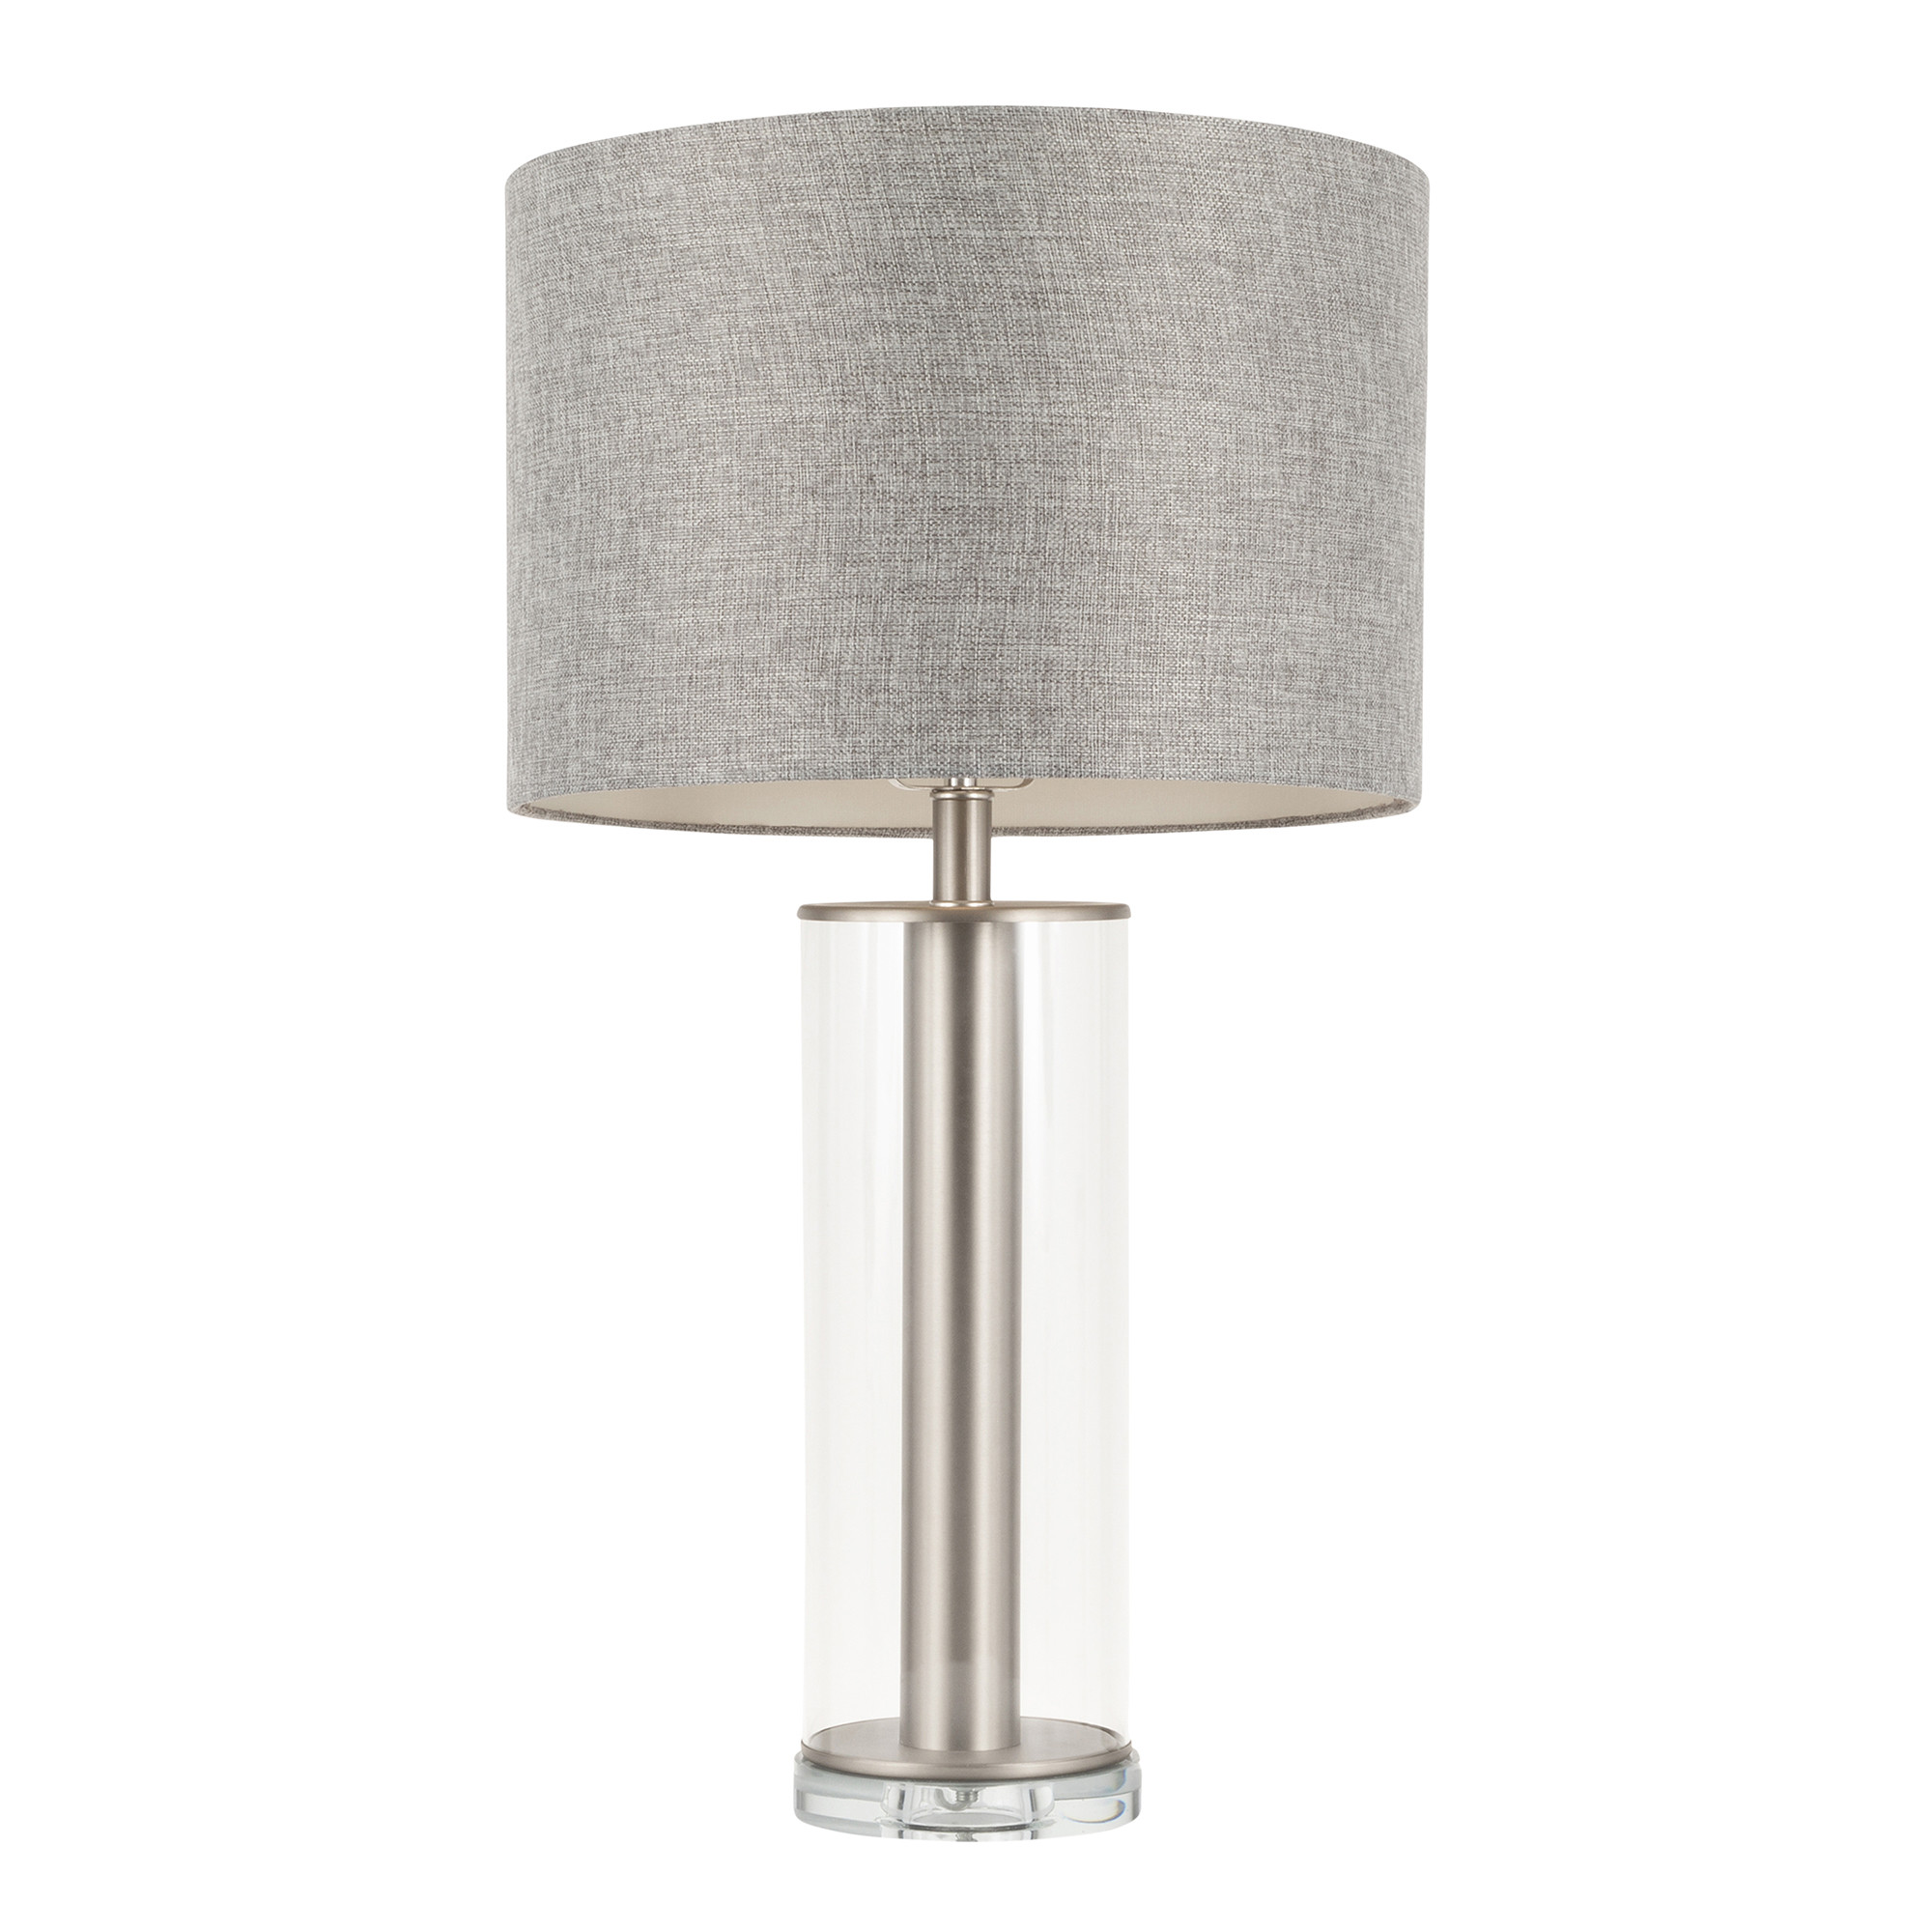 Glacier Contemporary Table Lamp In Brushed Nickel Metal Glass Base W Grey Linen Shade Lumisource Ls Glcrtb Gy